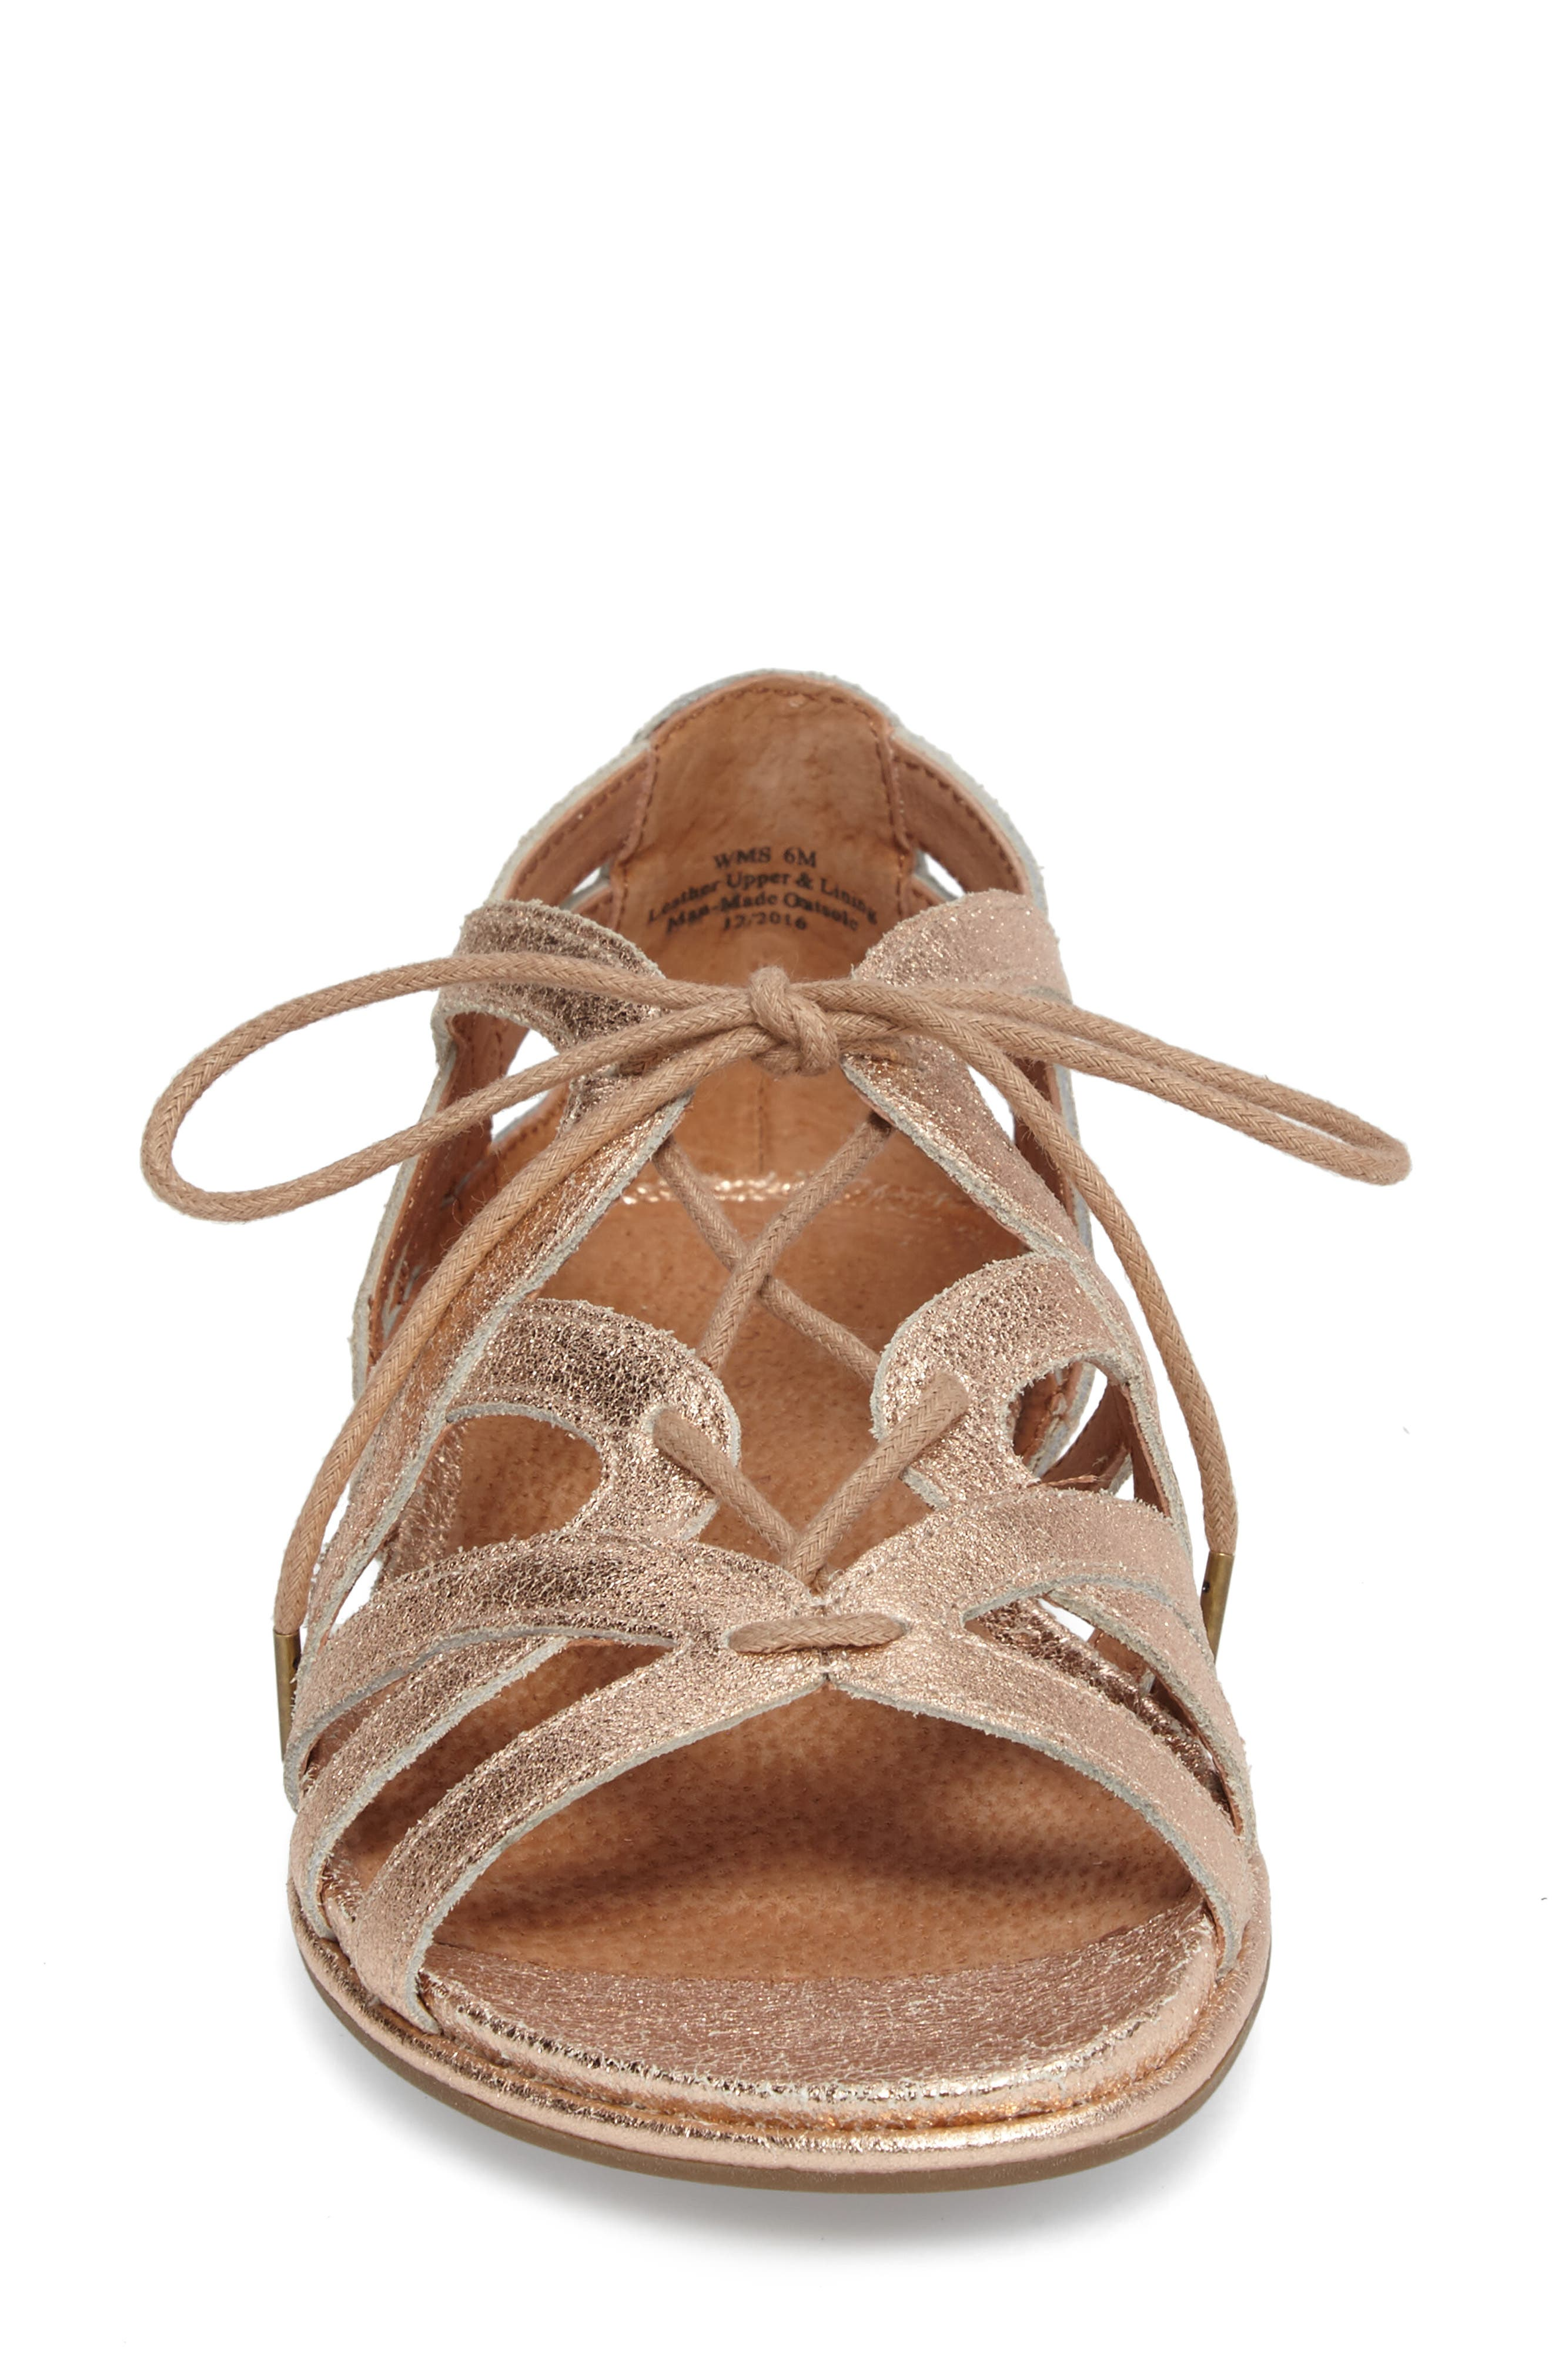 Orly Lace-Up Sandal,                             Alternate thumbnail 4, color,                             ROSE GOLD LEATHER